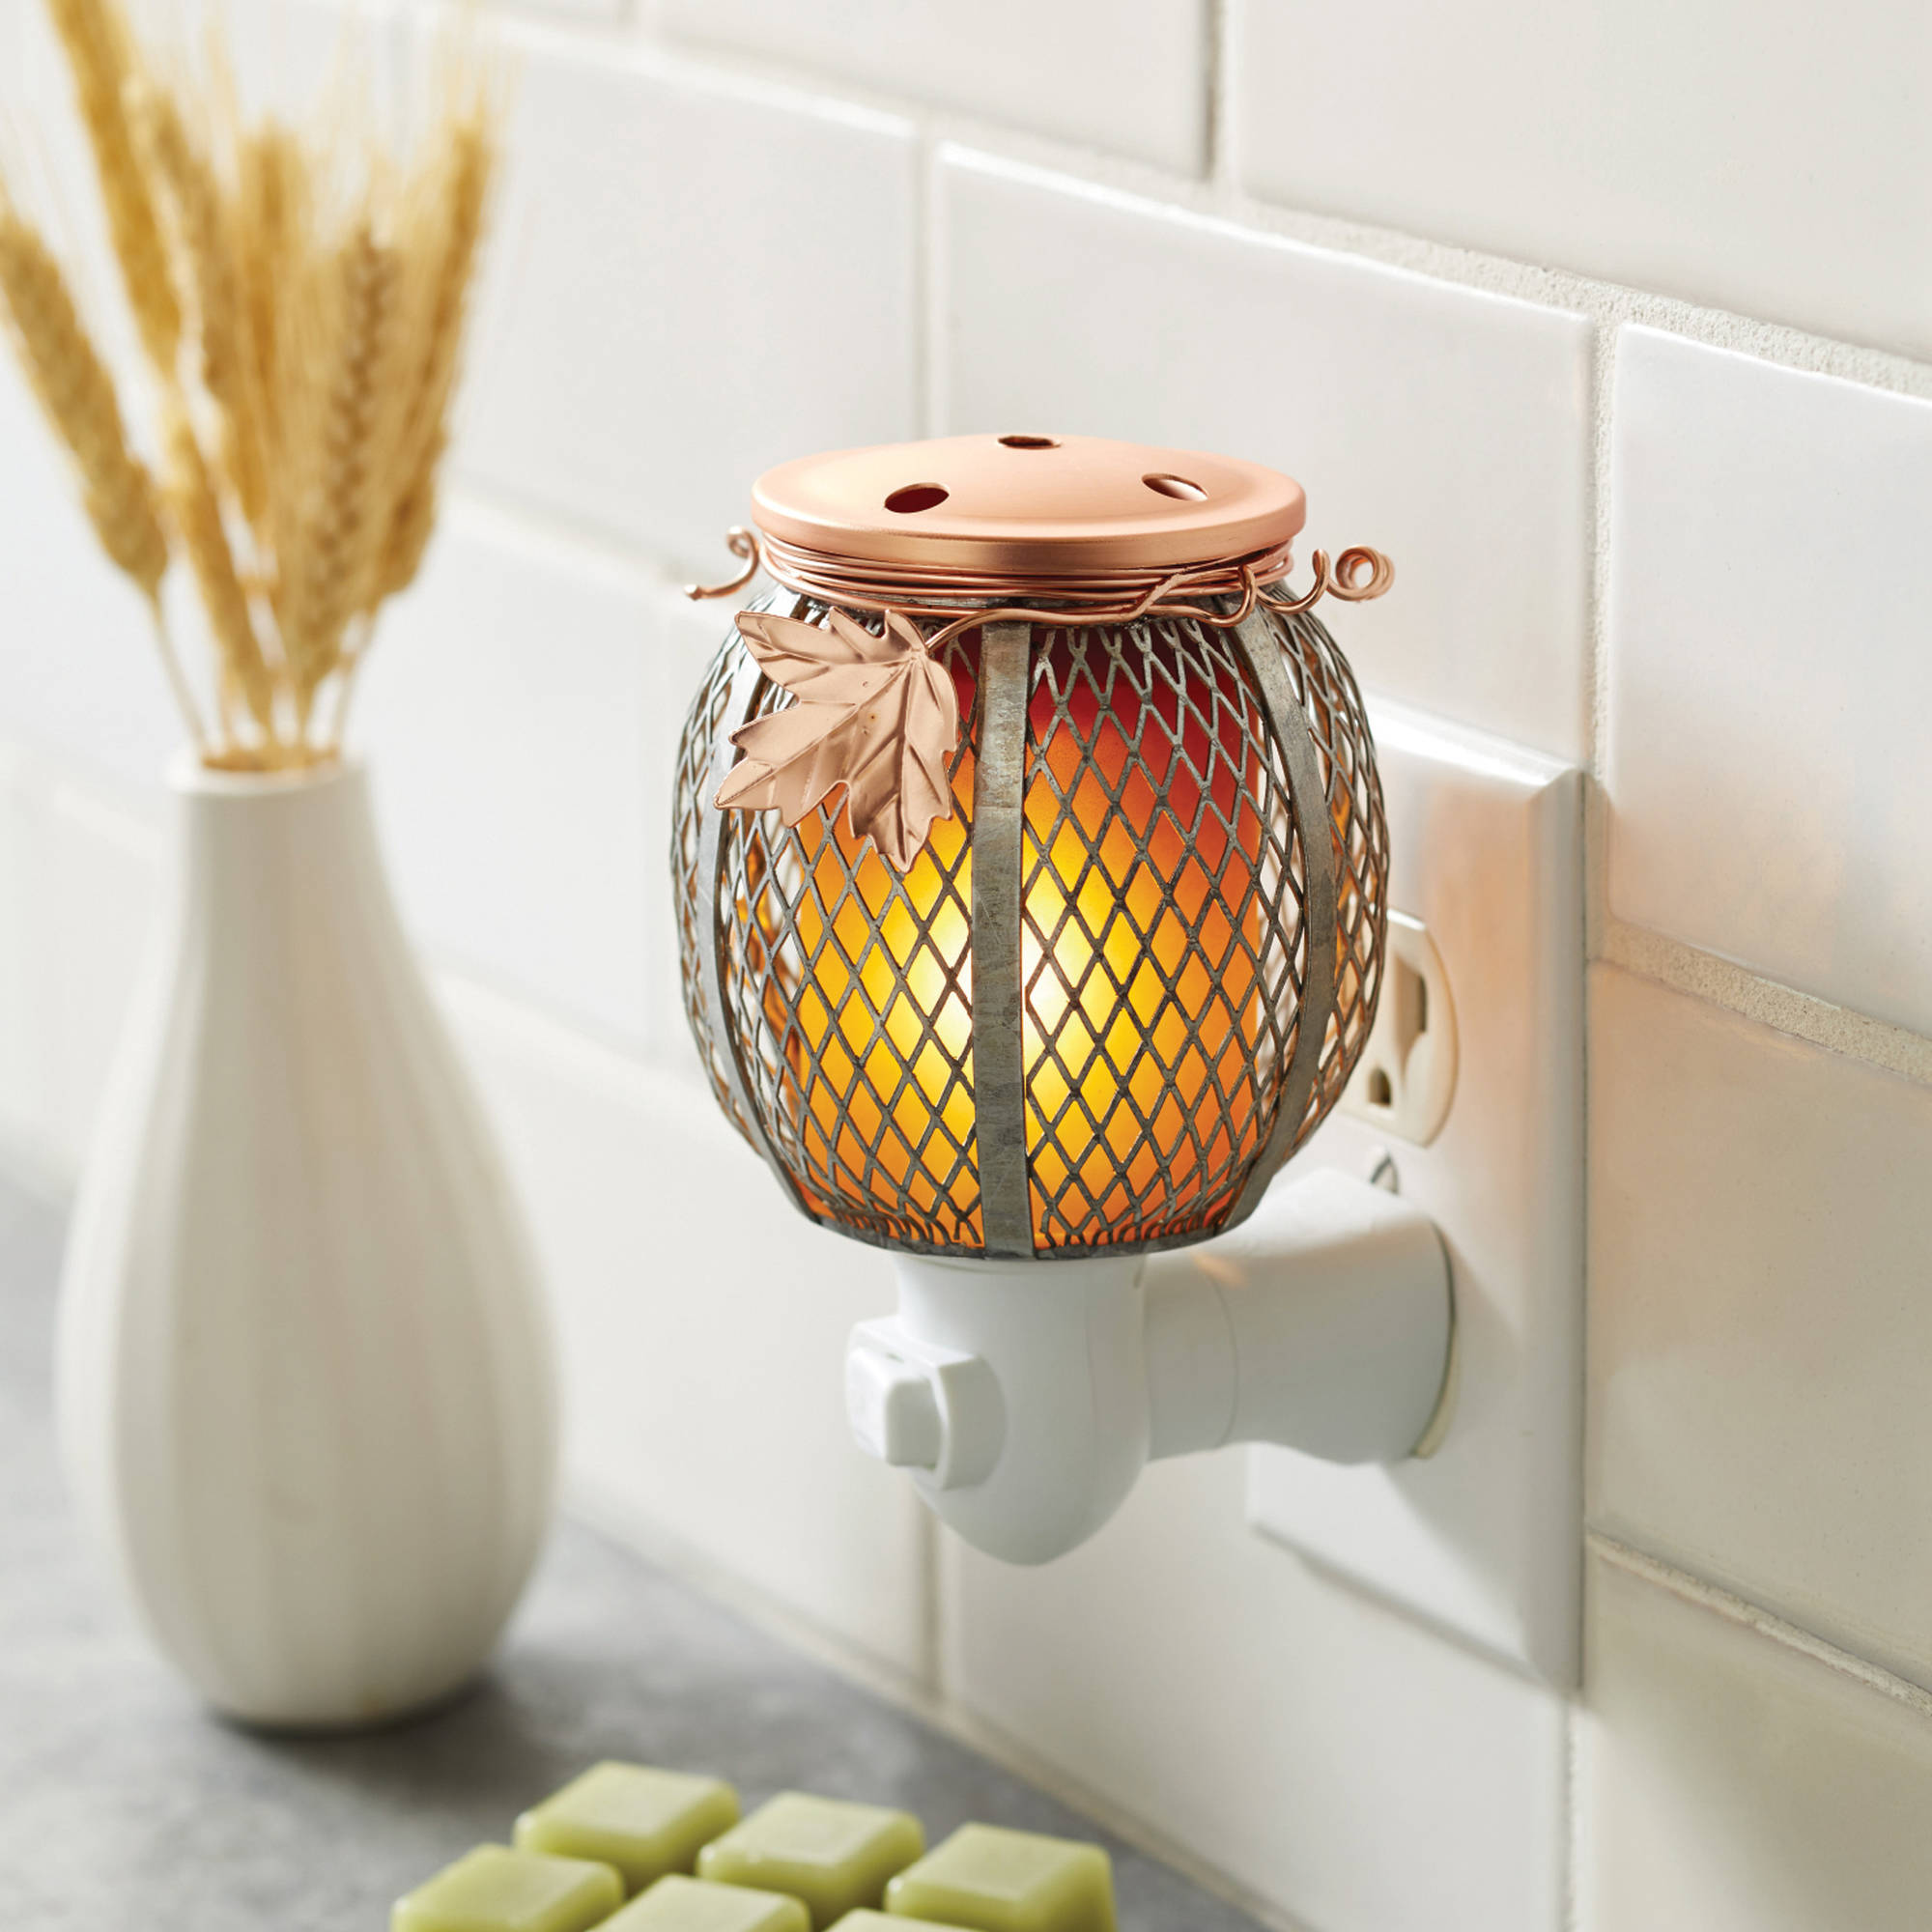 Better Homes and Gardens Accent Wax Warmer, Rustic Pumpkin